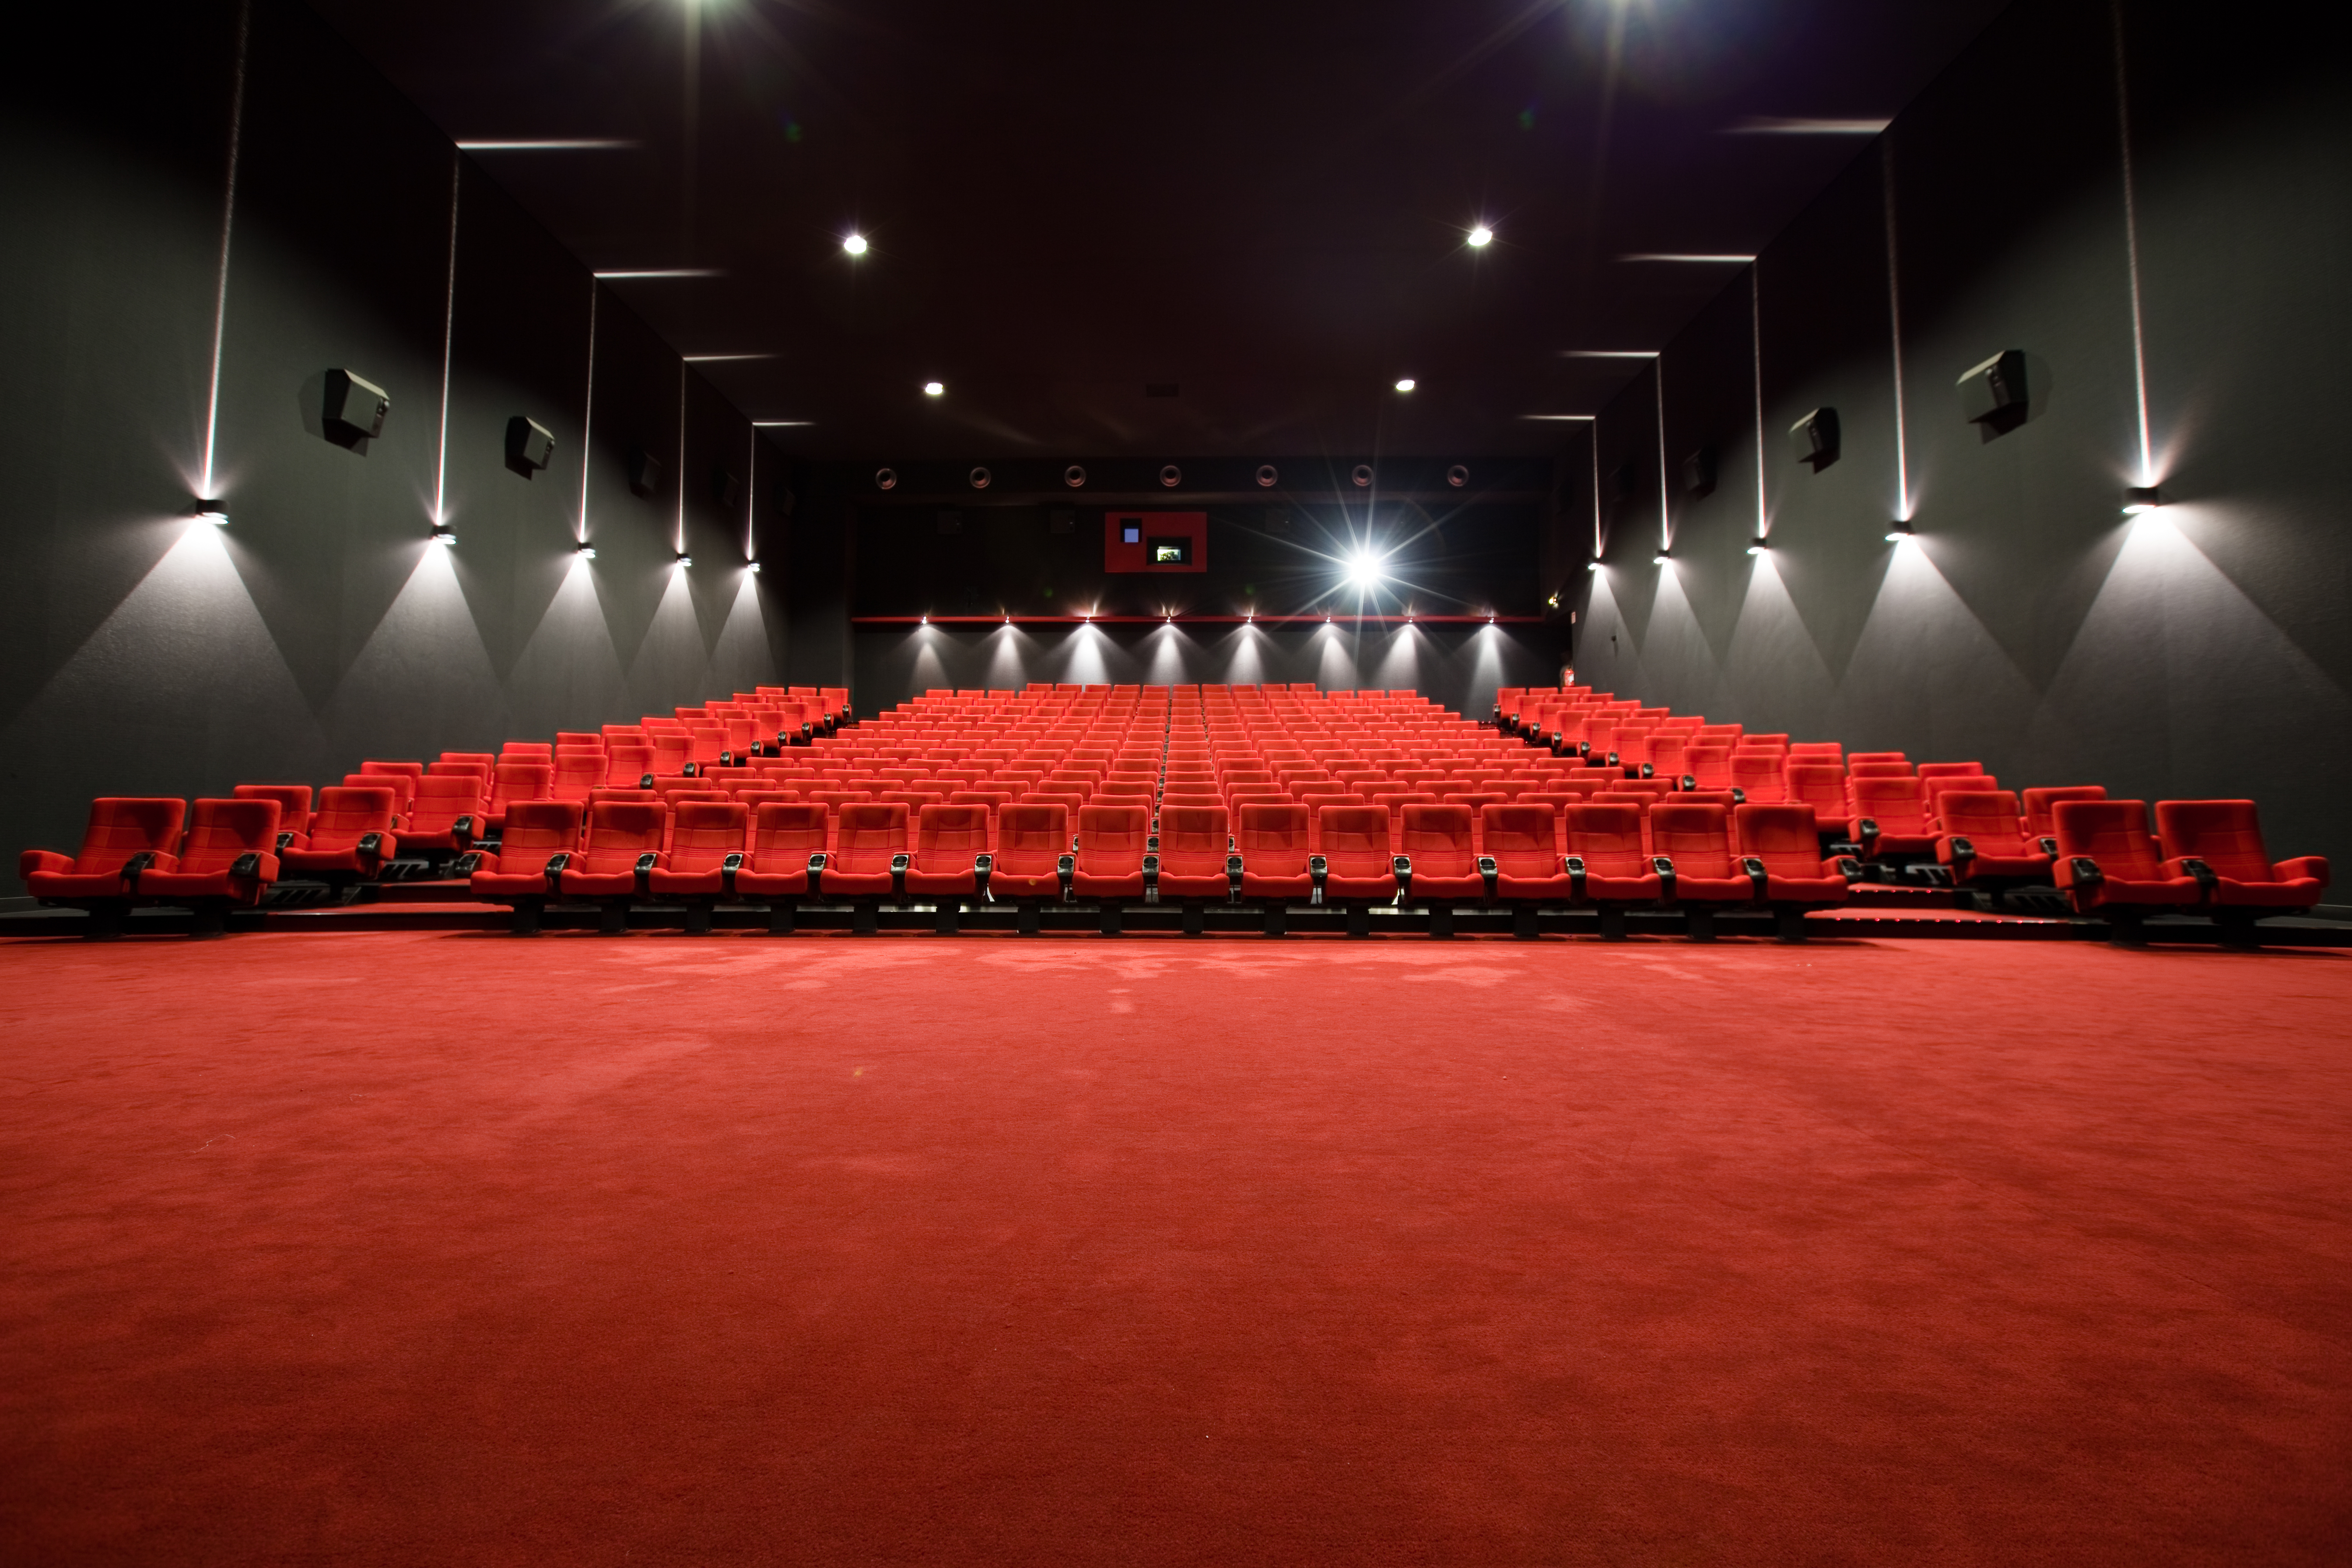 Entertainment Sessel Wallpaper Room Red Movies Path Audience Structure